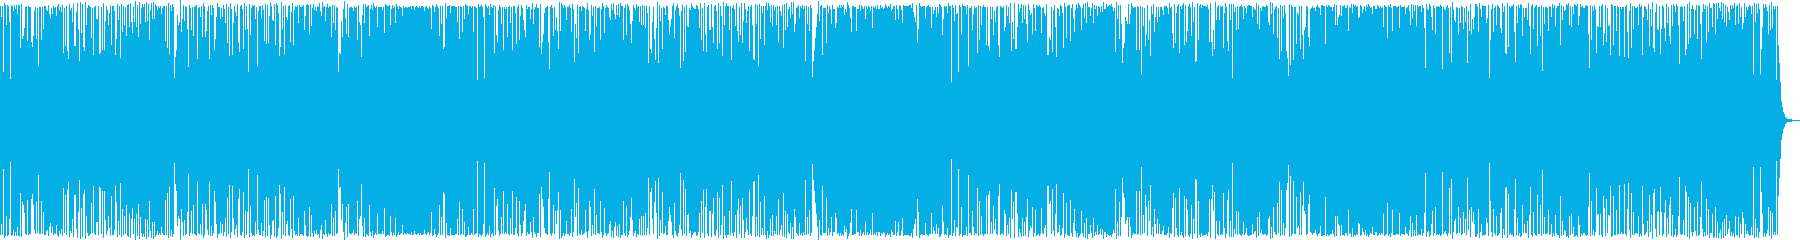 Cool light pops's reproduced waveform